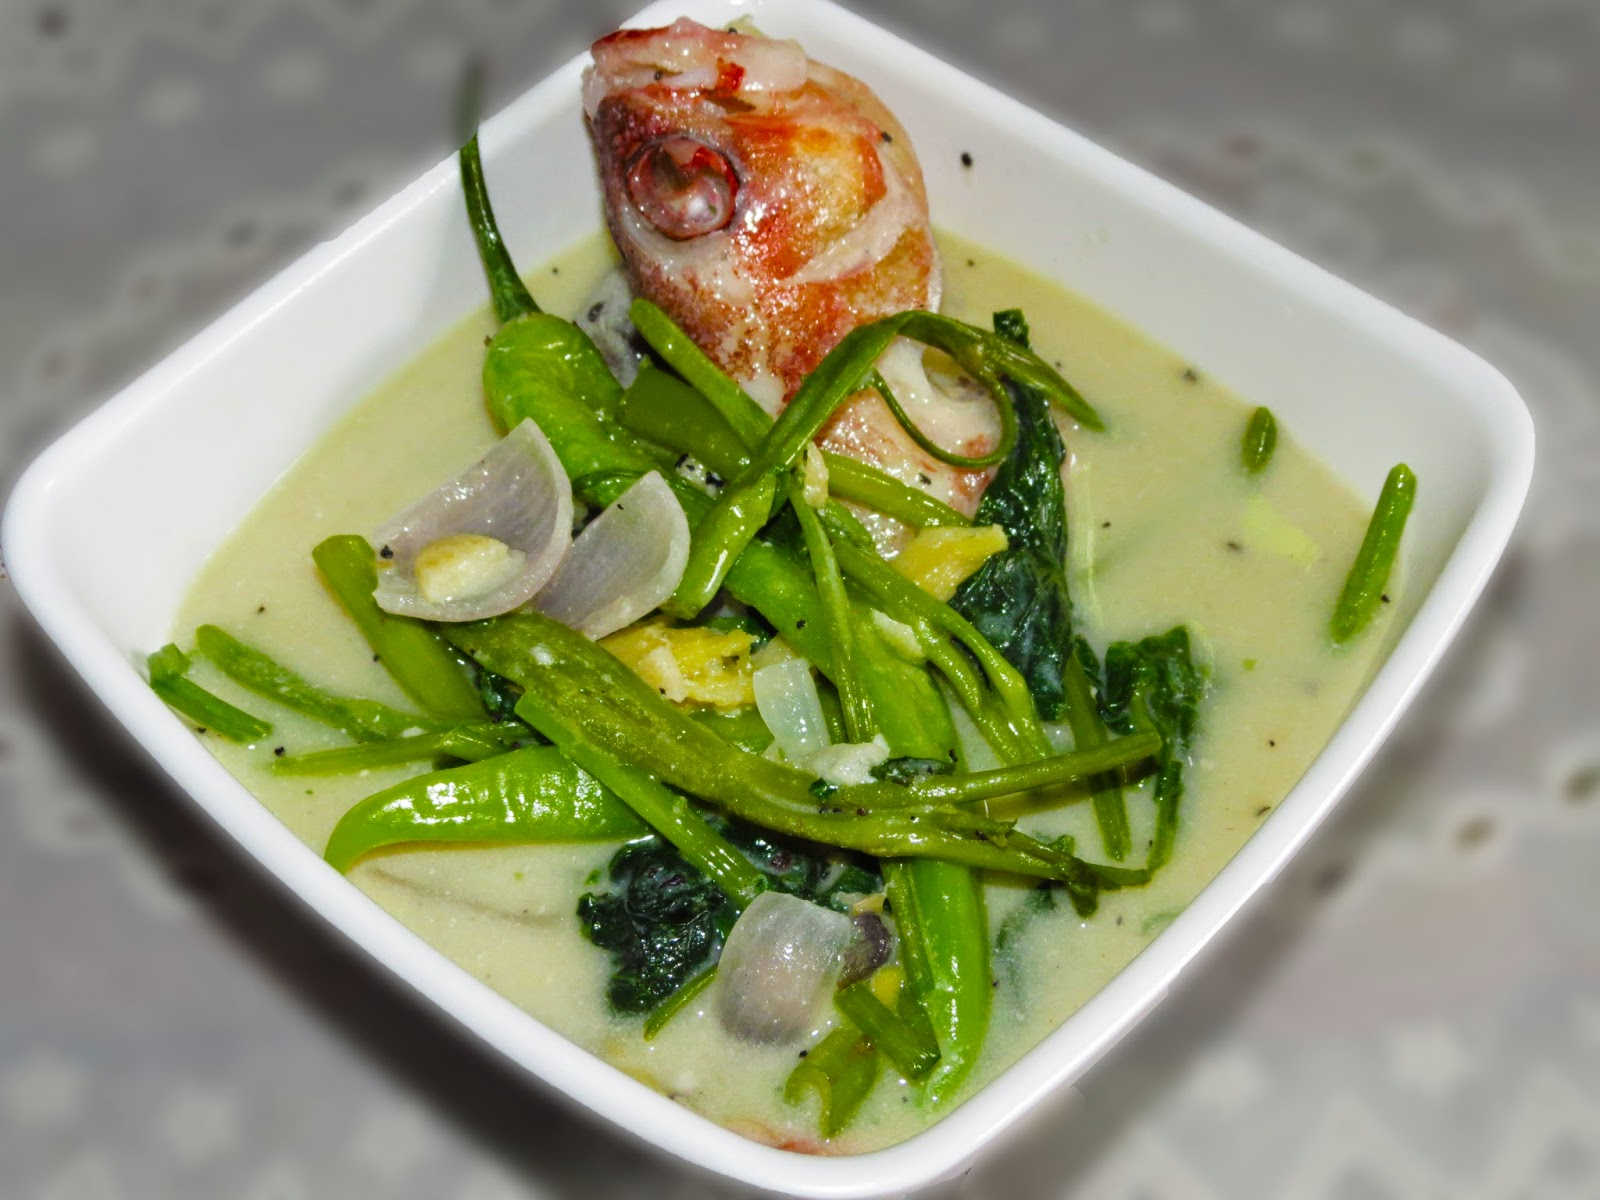 This dish is cooked with coconut milk.